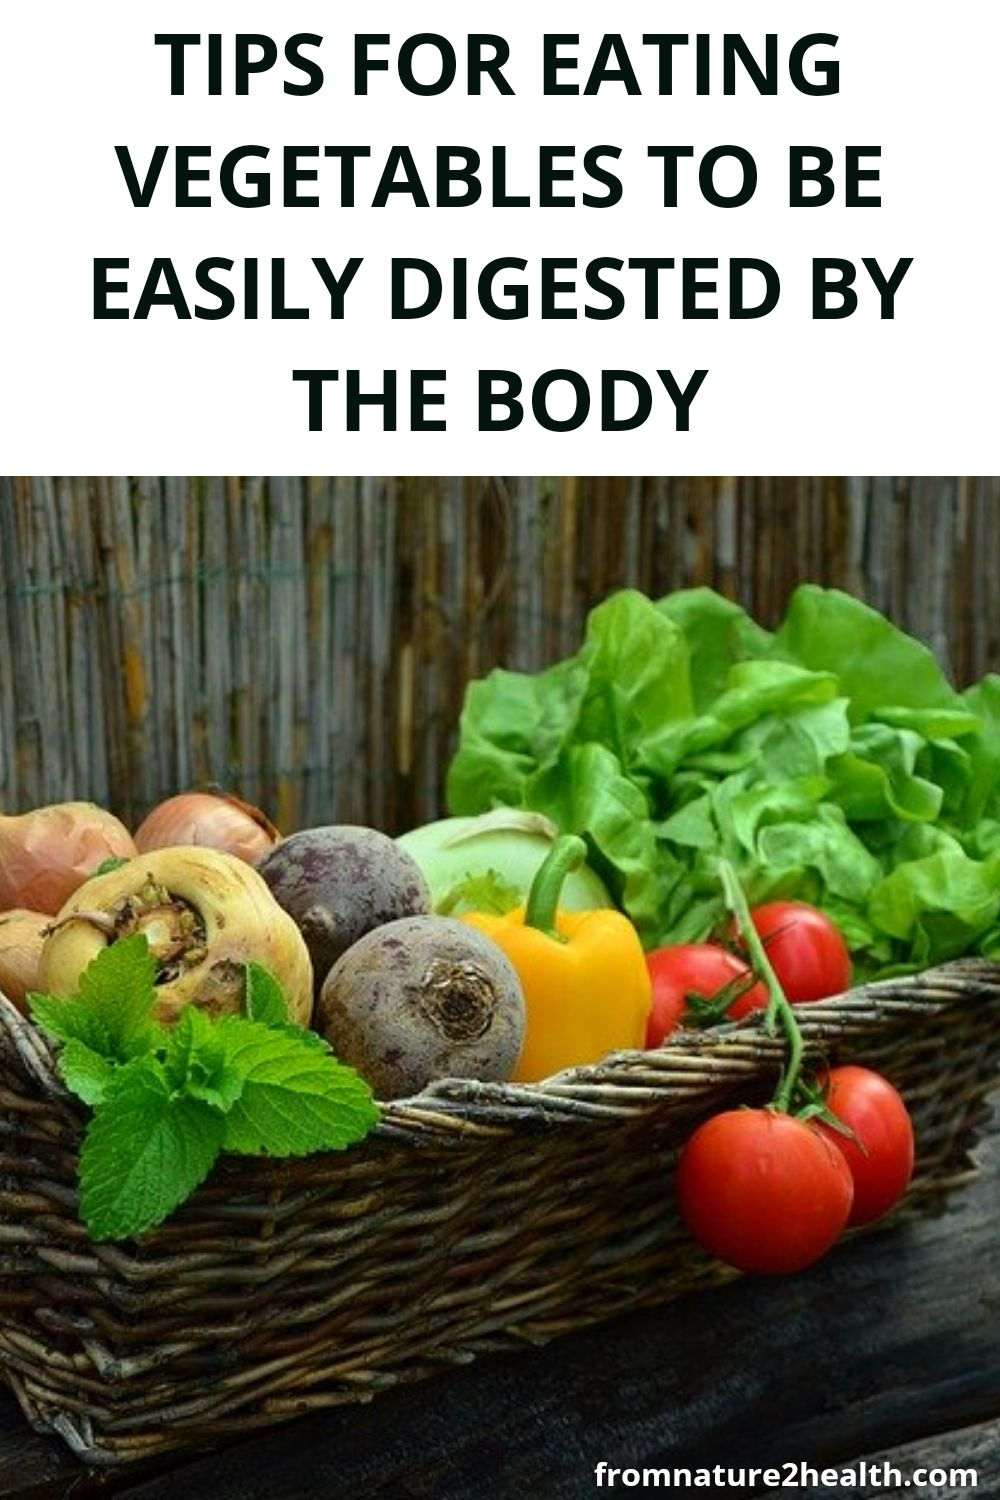 Tips for Eating Vegetables to Be Easily Digested by the Body